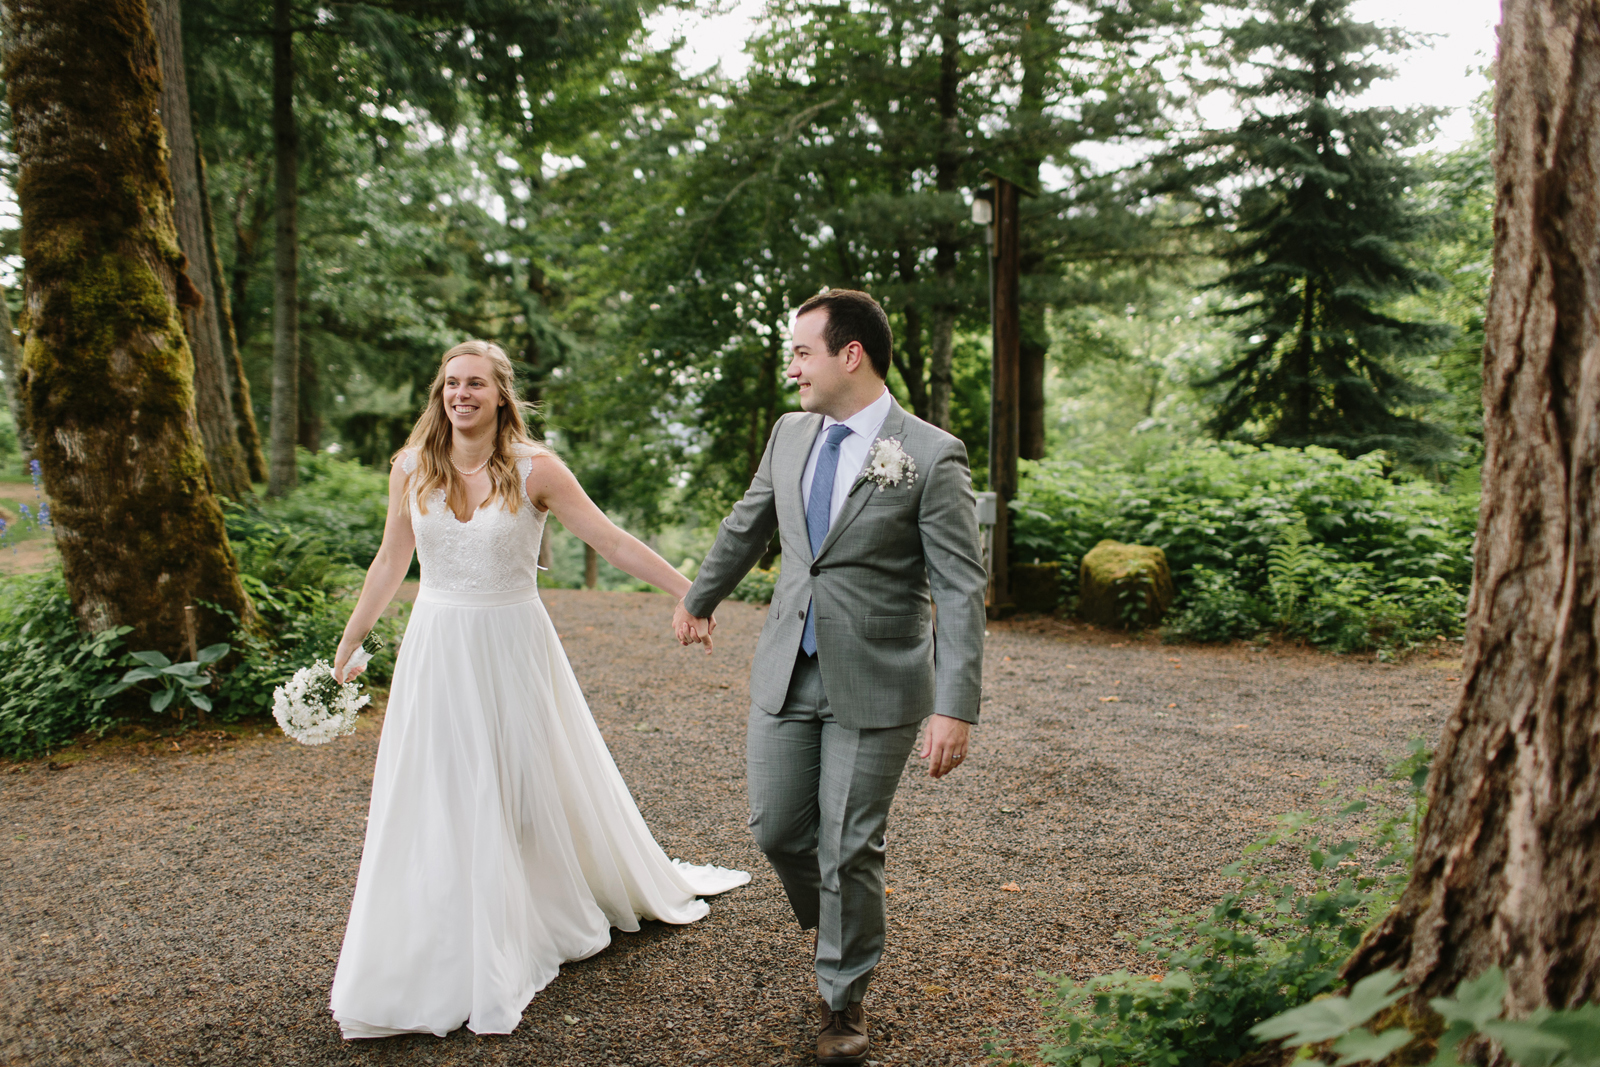 The bride and groom dance their way into the reception entrance at Bridal Veil Lakes in Corbett, Oregon